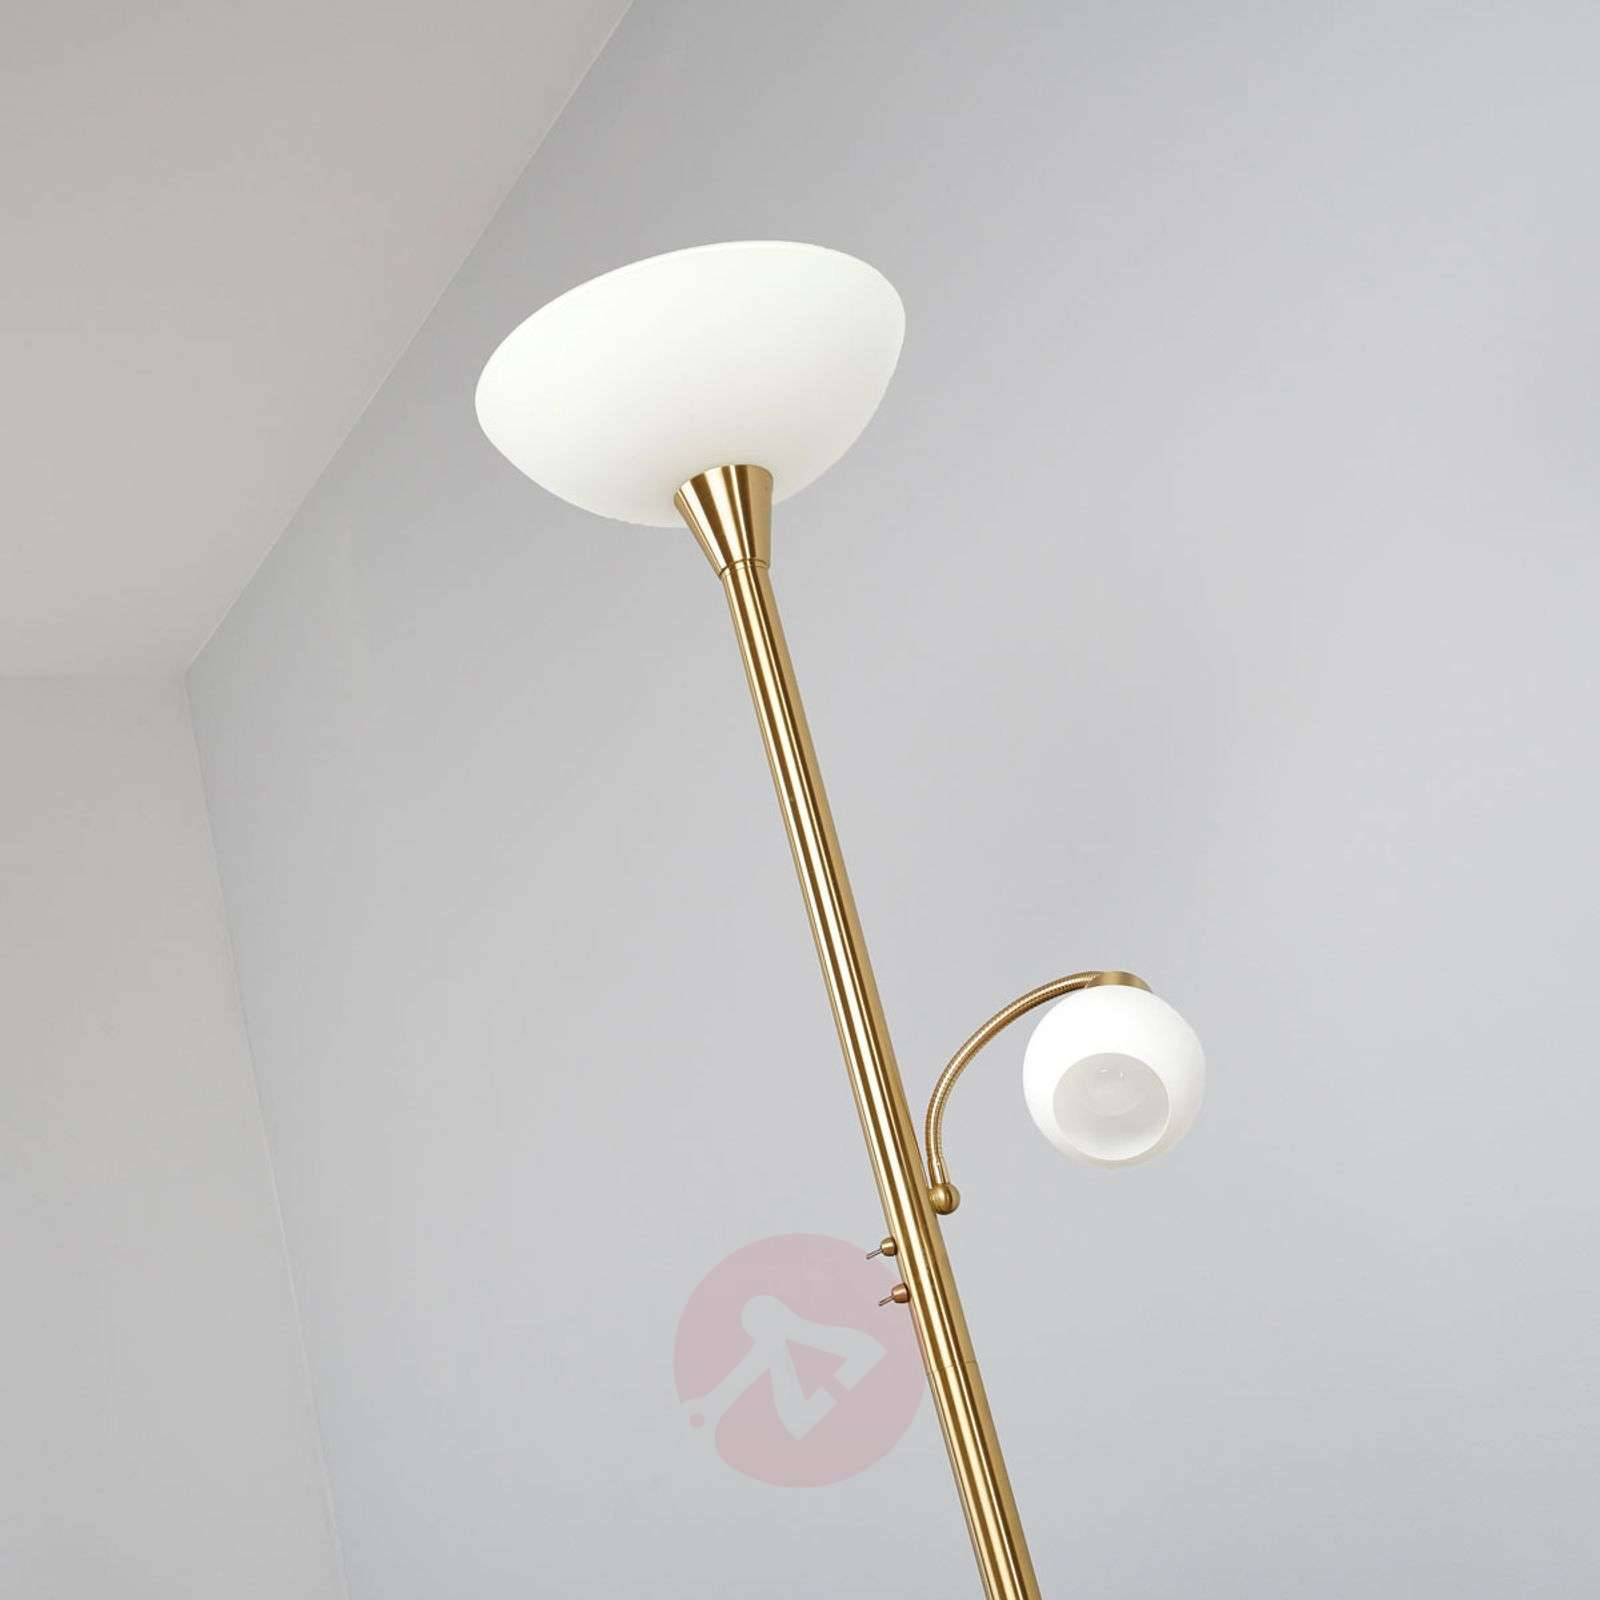 LED uplighter Elaina in brass with reading light-9620009-01